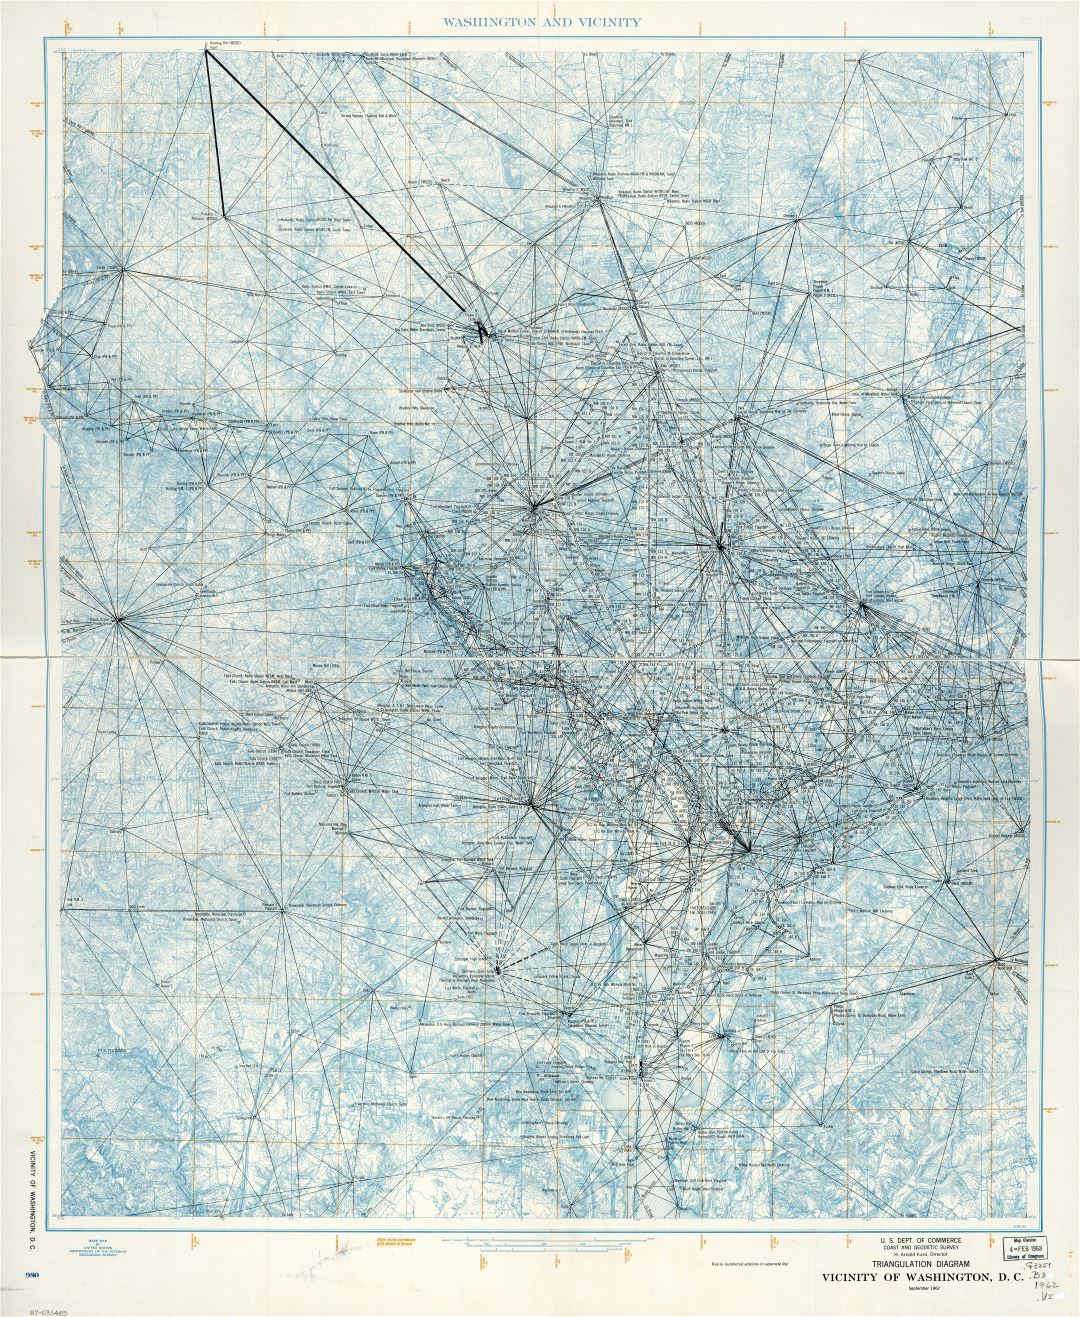 Large scale detailed triangulation diagram map of vicinity of Washington D.C. - 1962